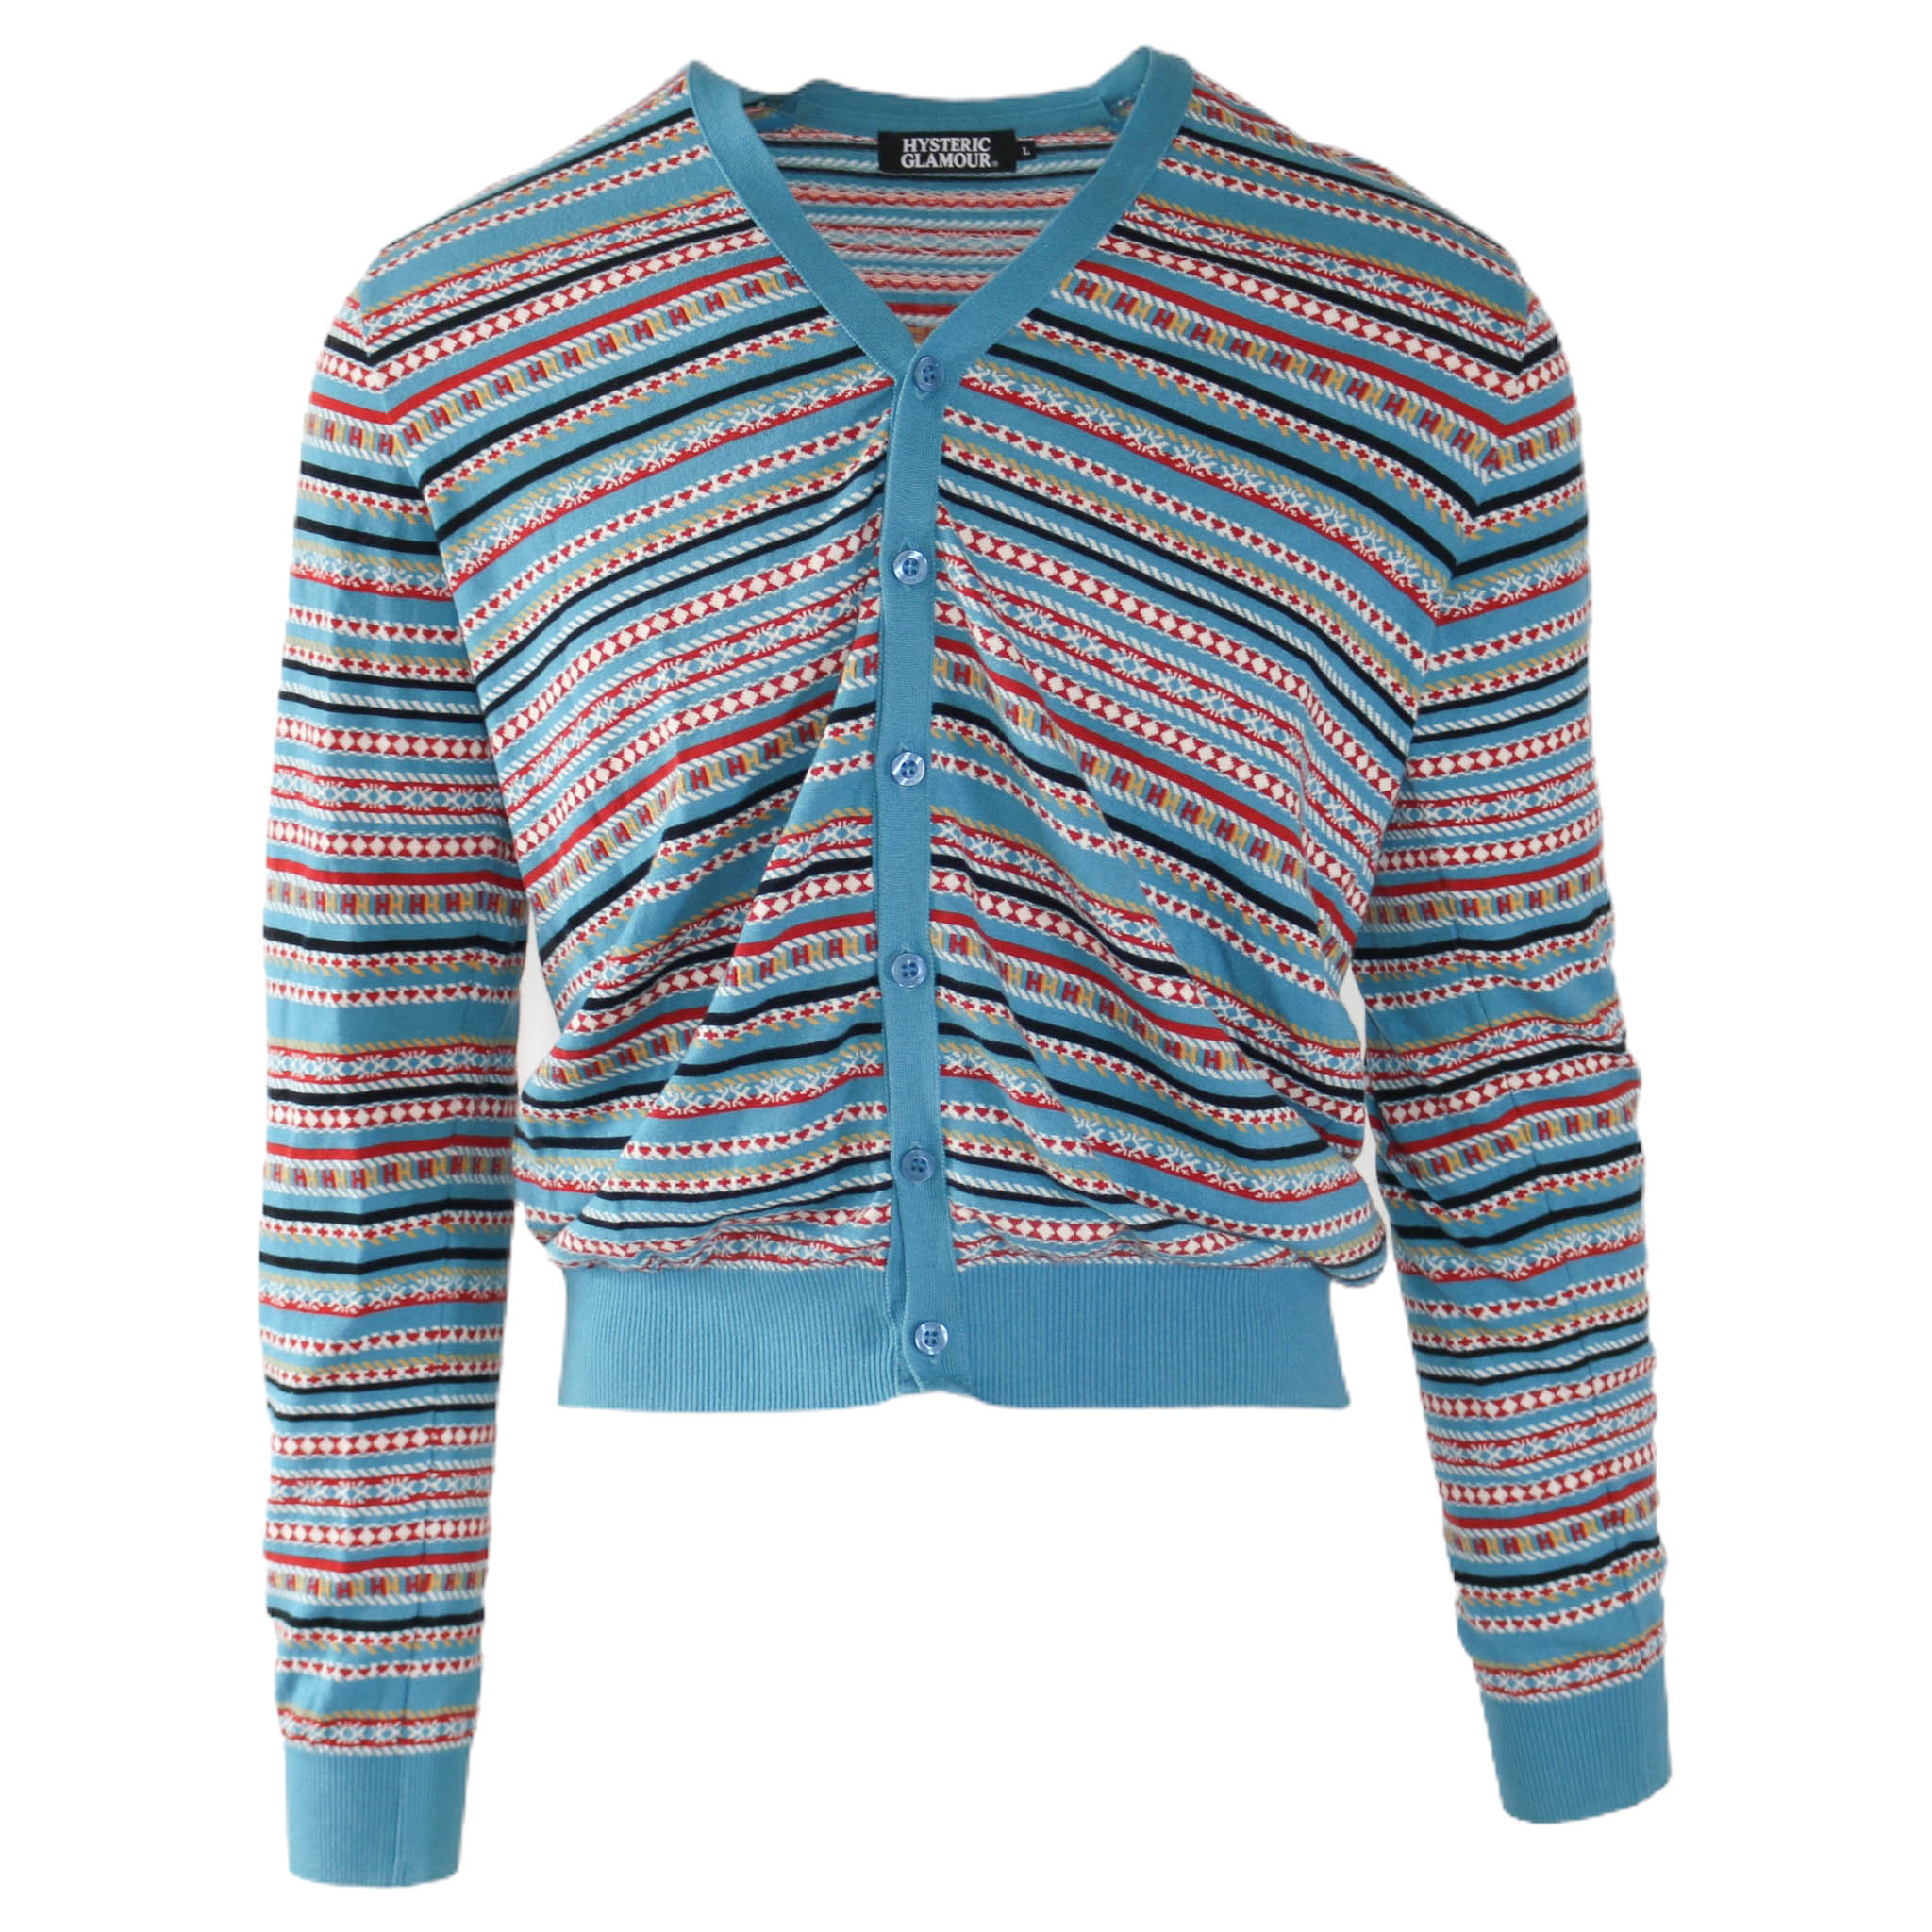 Hysteric Glamour Blue Crush Sweater